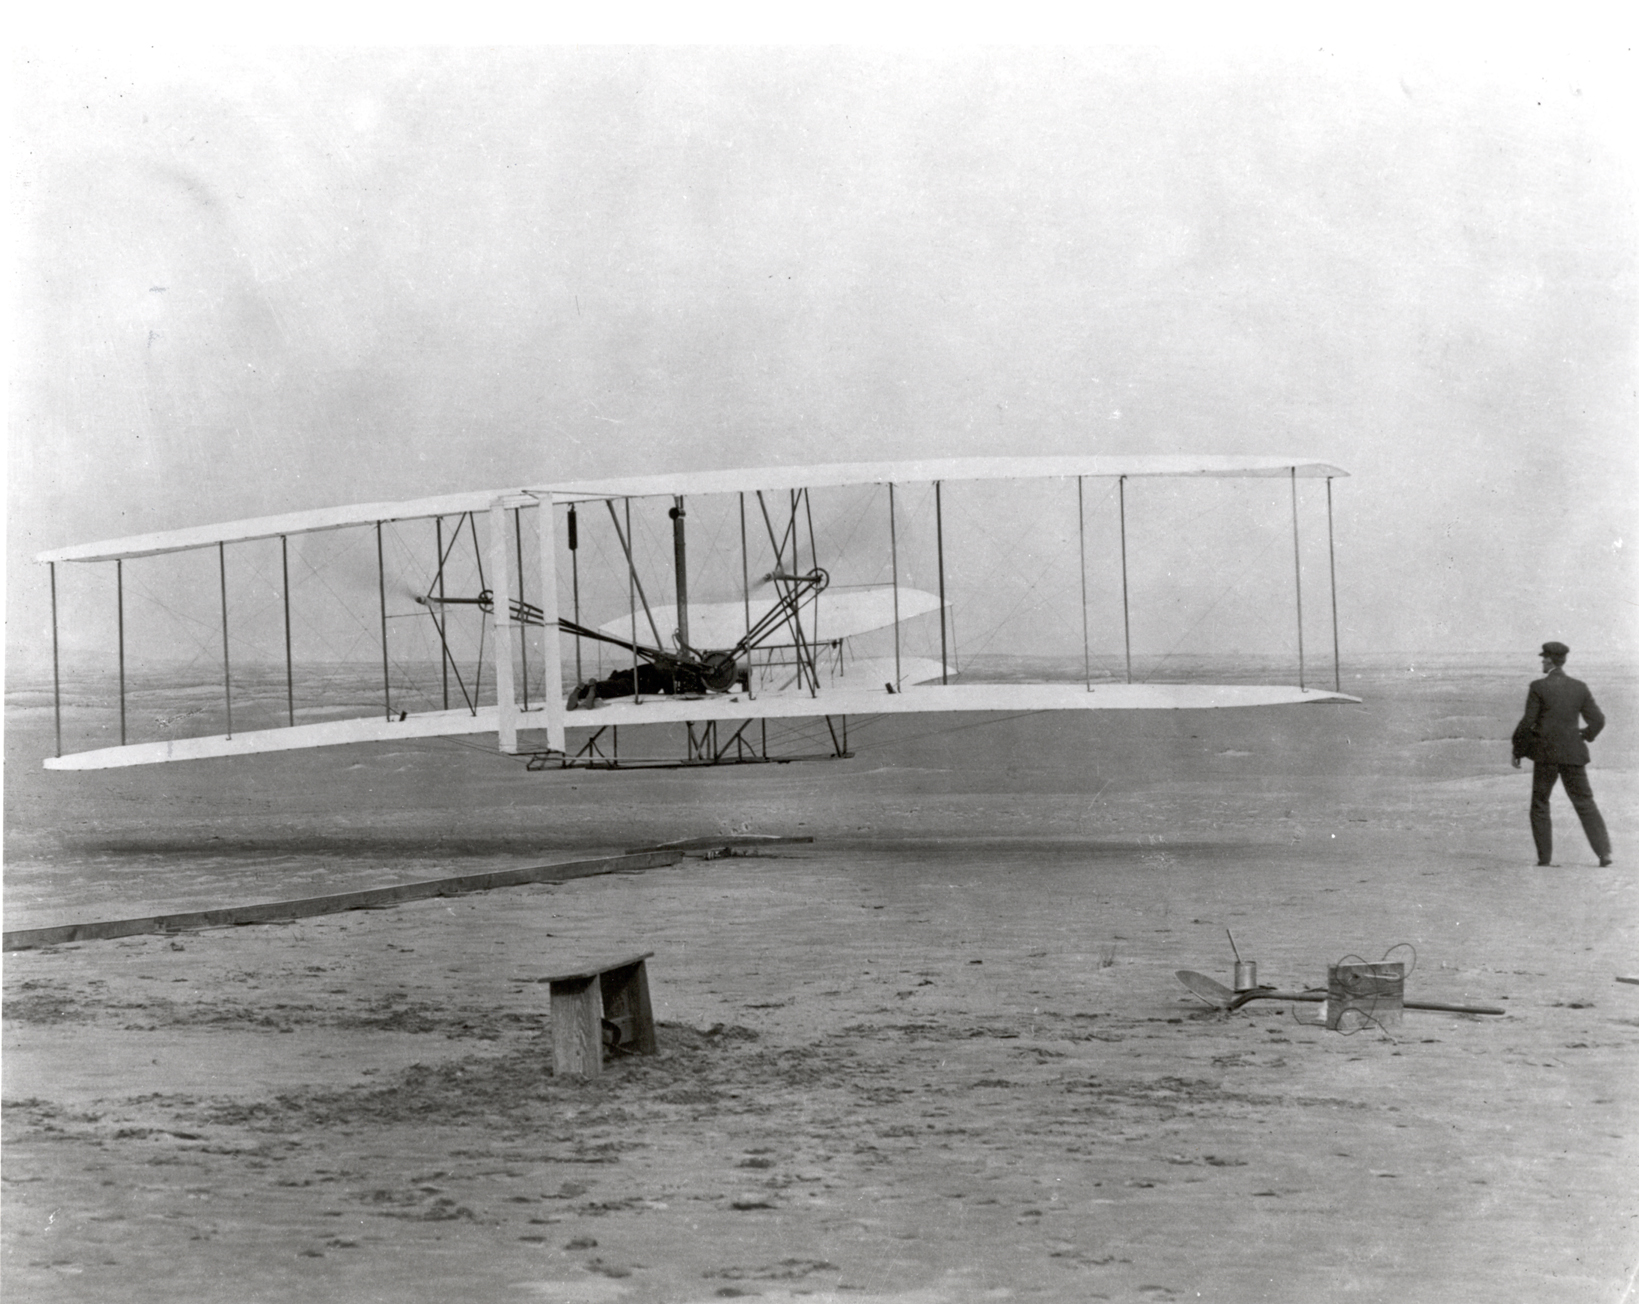 """the gift of flight from the orville brothers Just three weeks after the wright brothers pioneered flight, orville wright explains what went wrong – and right the longest flight, he says, was 59 seconds: chalk that up to """"pilot error"""" or what wright calls here, """"the inexperience of the operator of this particular machine""""."""